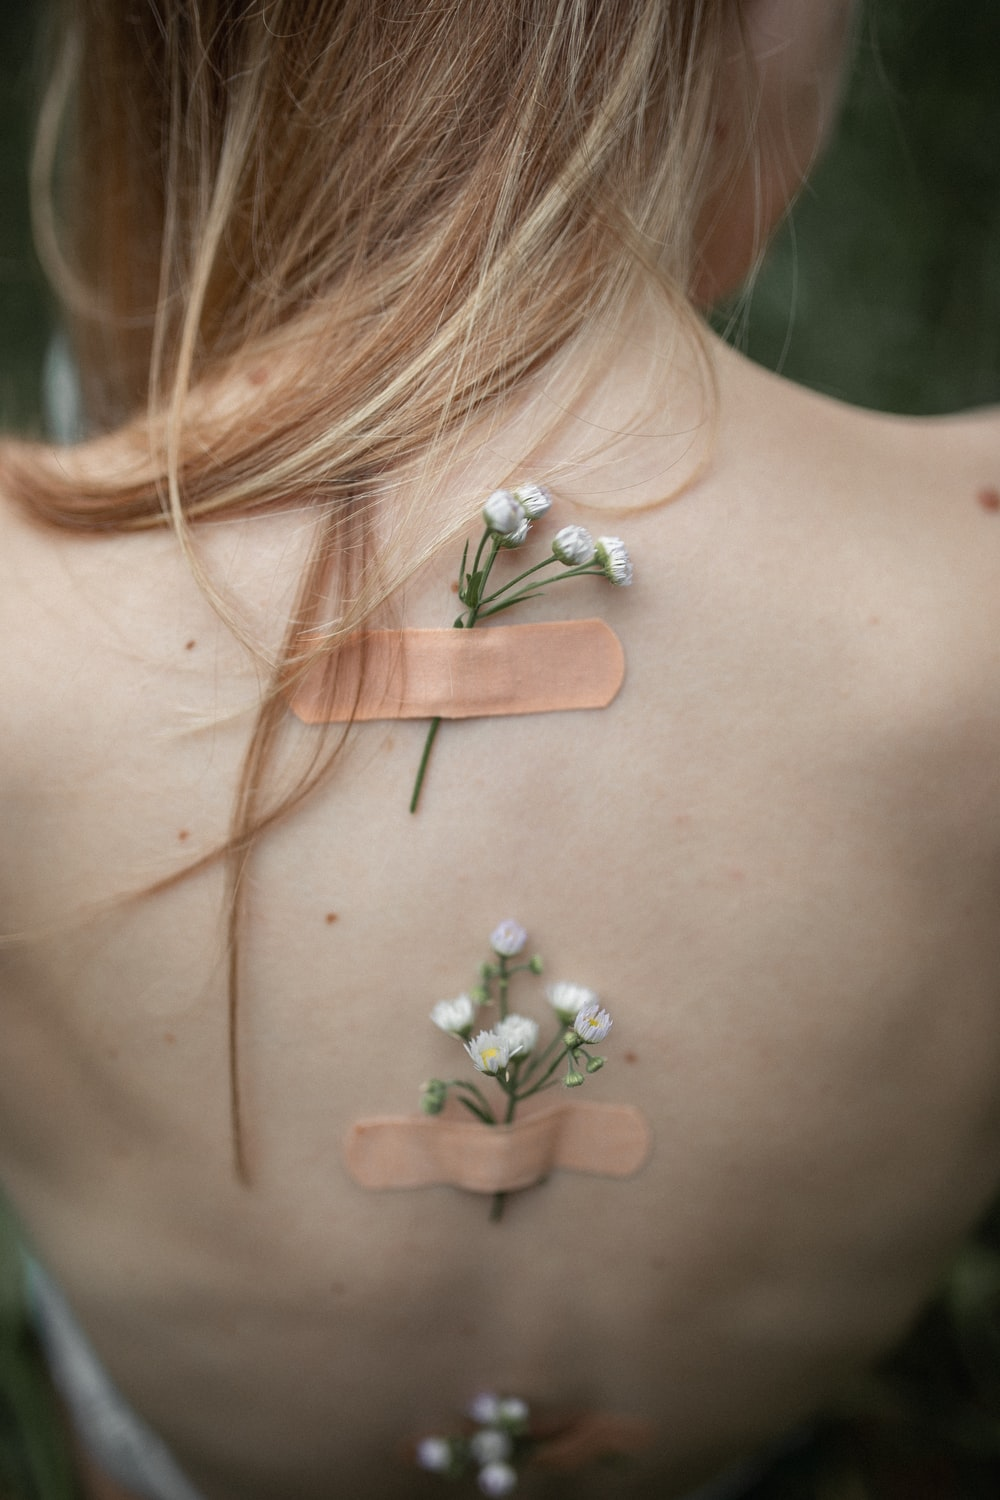 white petaled flowers stuck on a woman's back